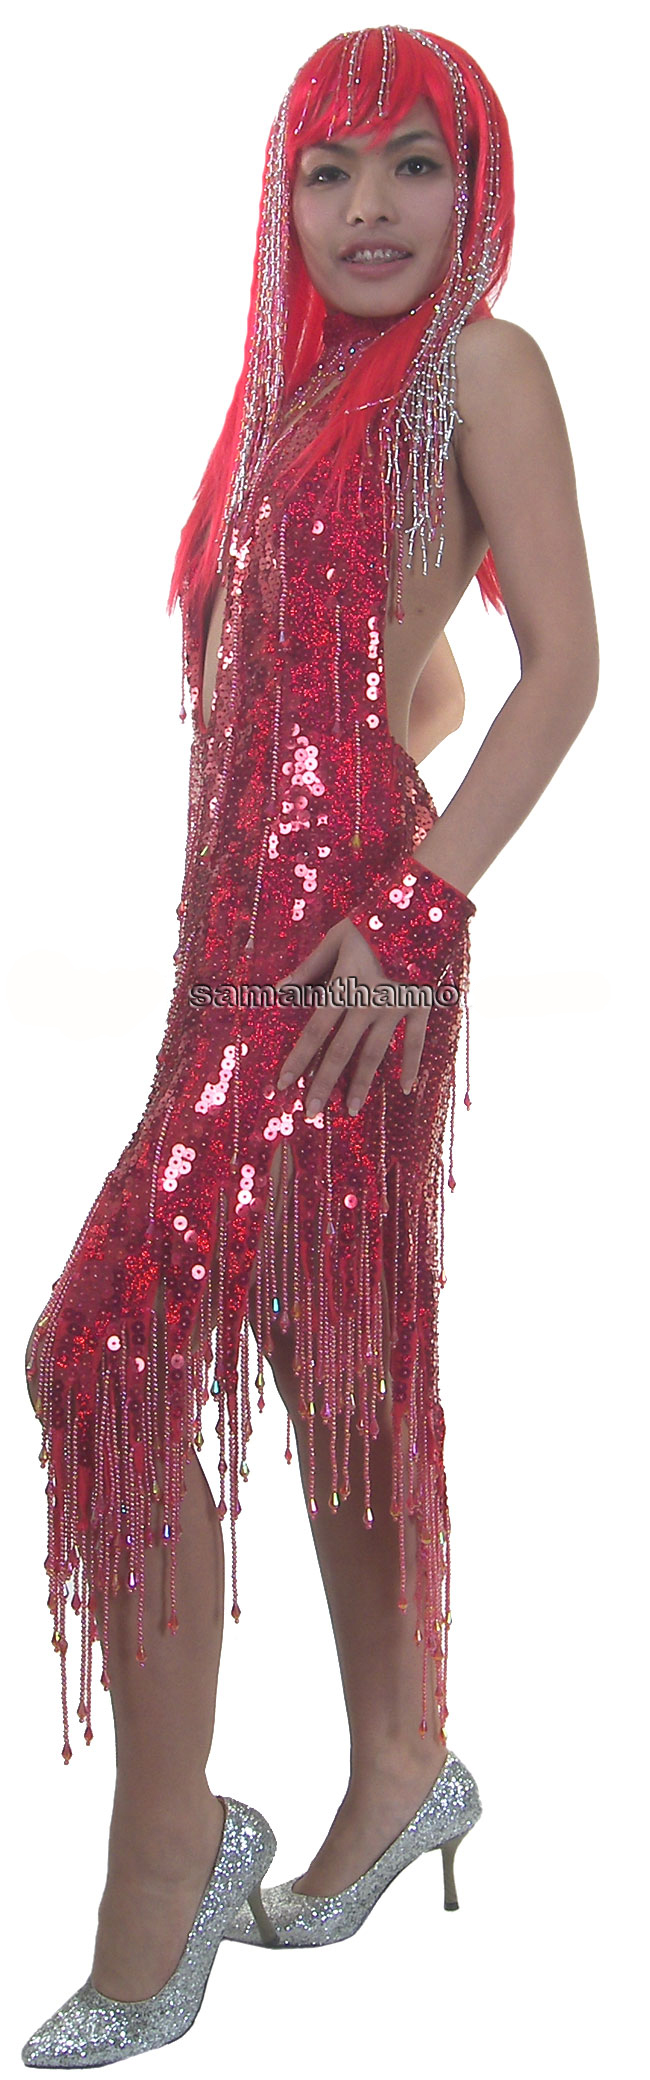 https://michaeljacksoncelebrityclothing.com/Celebrity-Costumes/CBS0888-latin-dance-dress.jpg